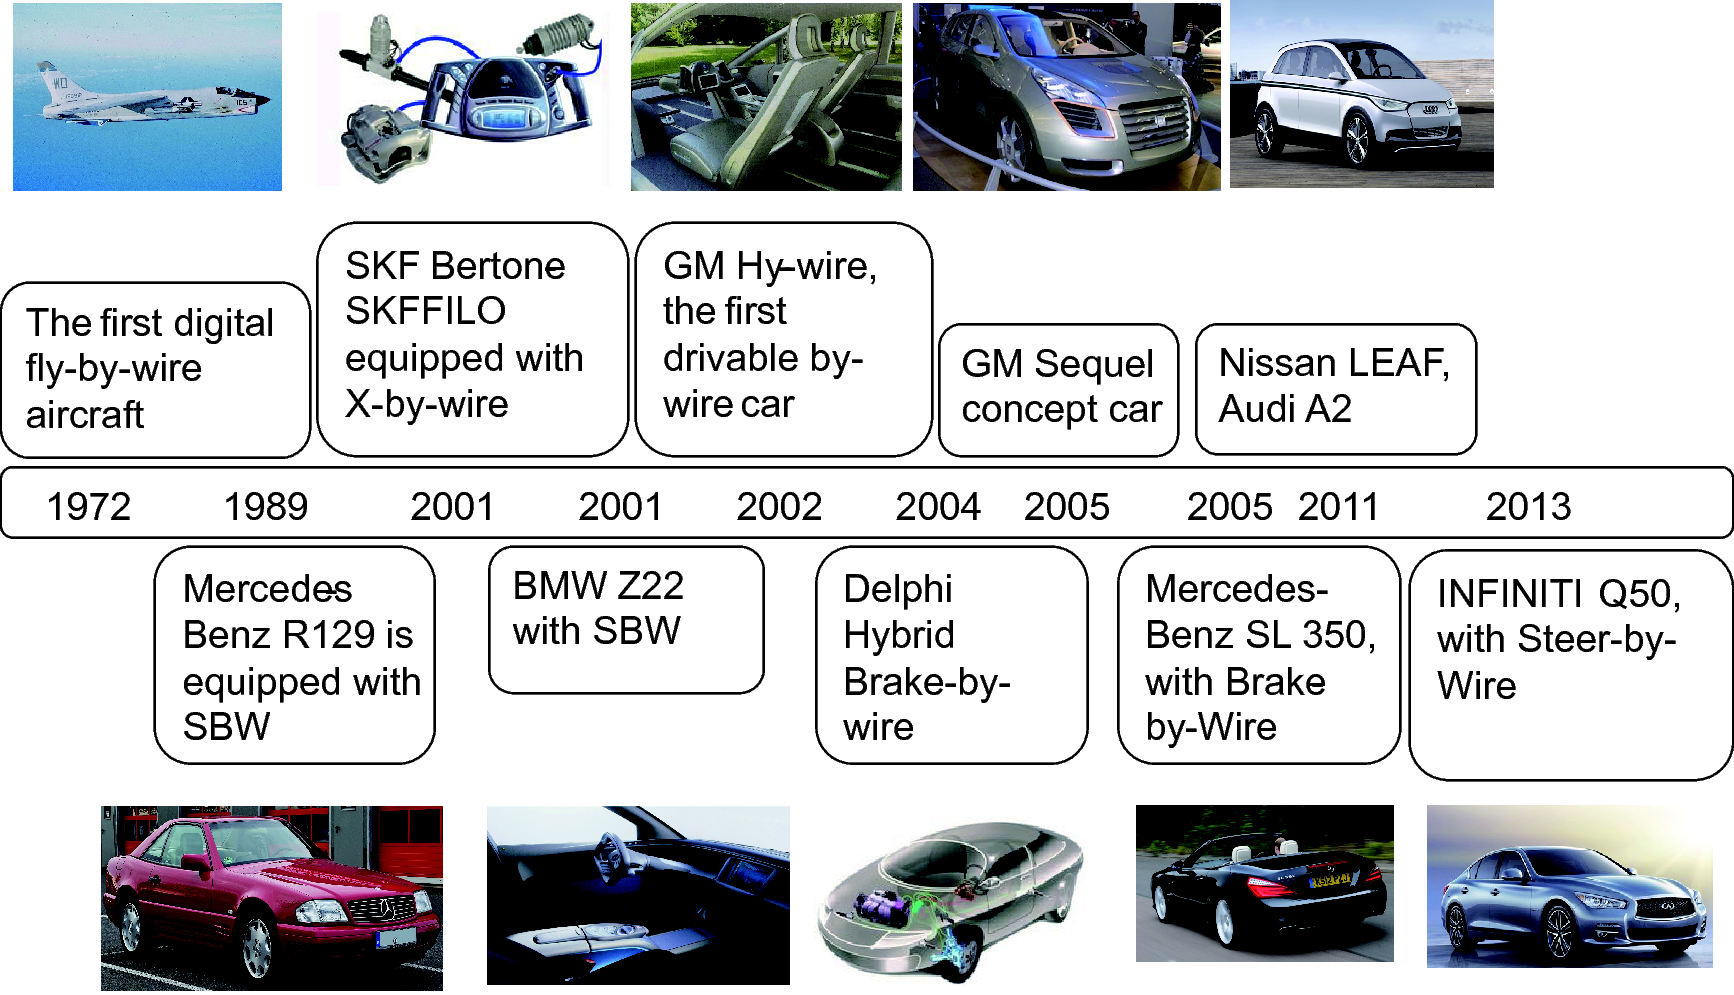 Intelligent and connected vehicles: Current status and <sc>future